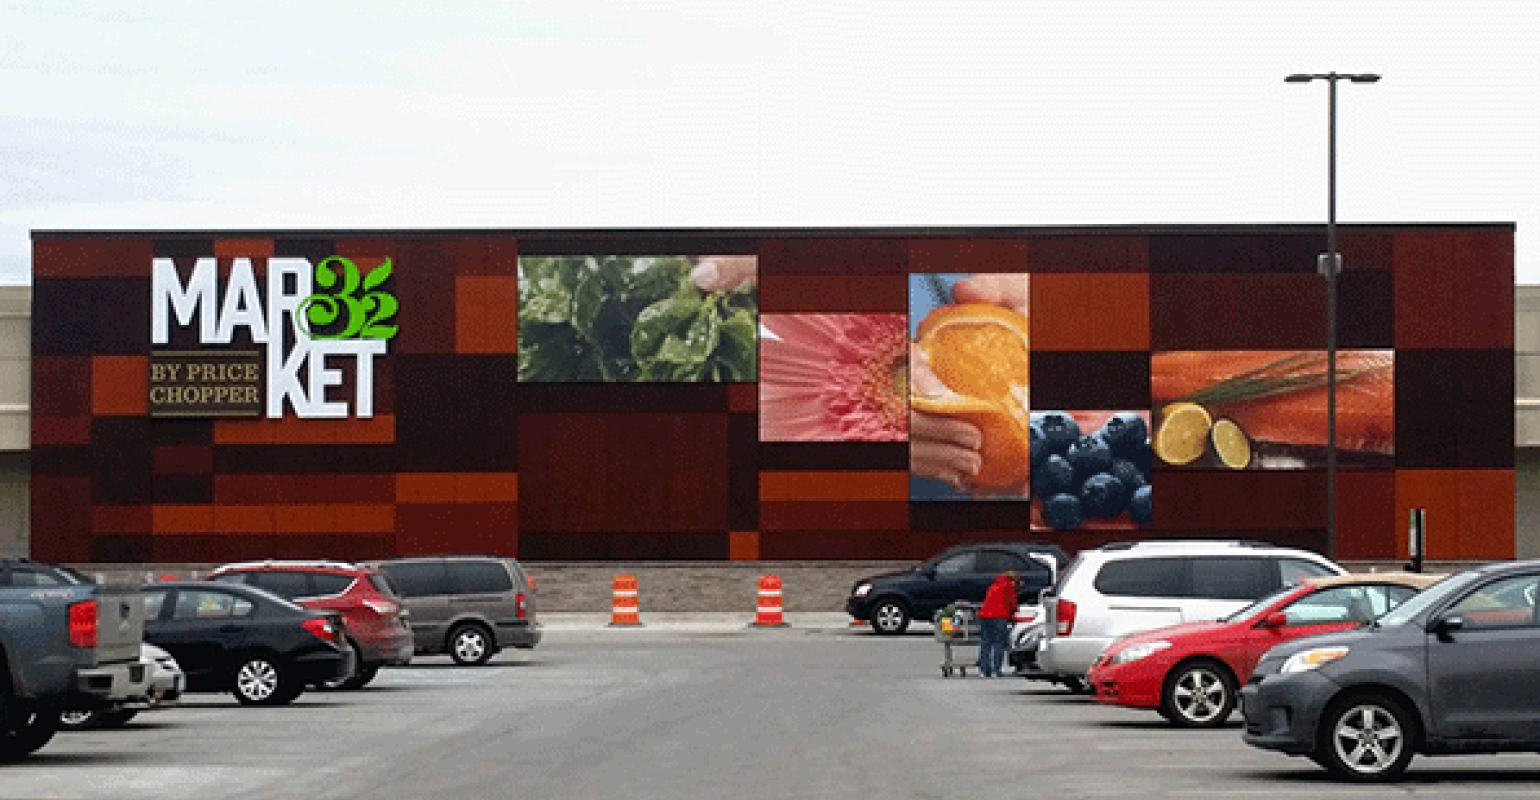 Price Chopper Reveals Market 32 Facade Supermarket News